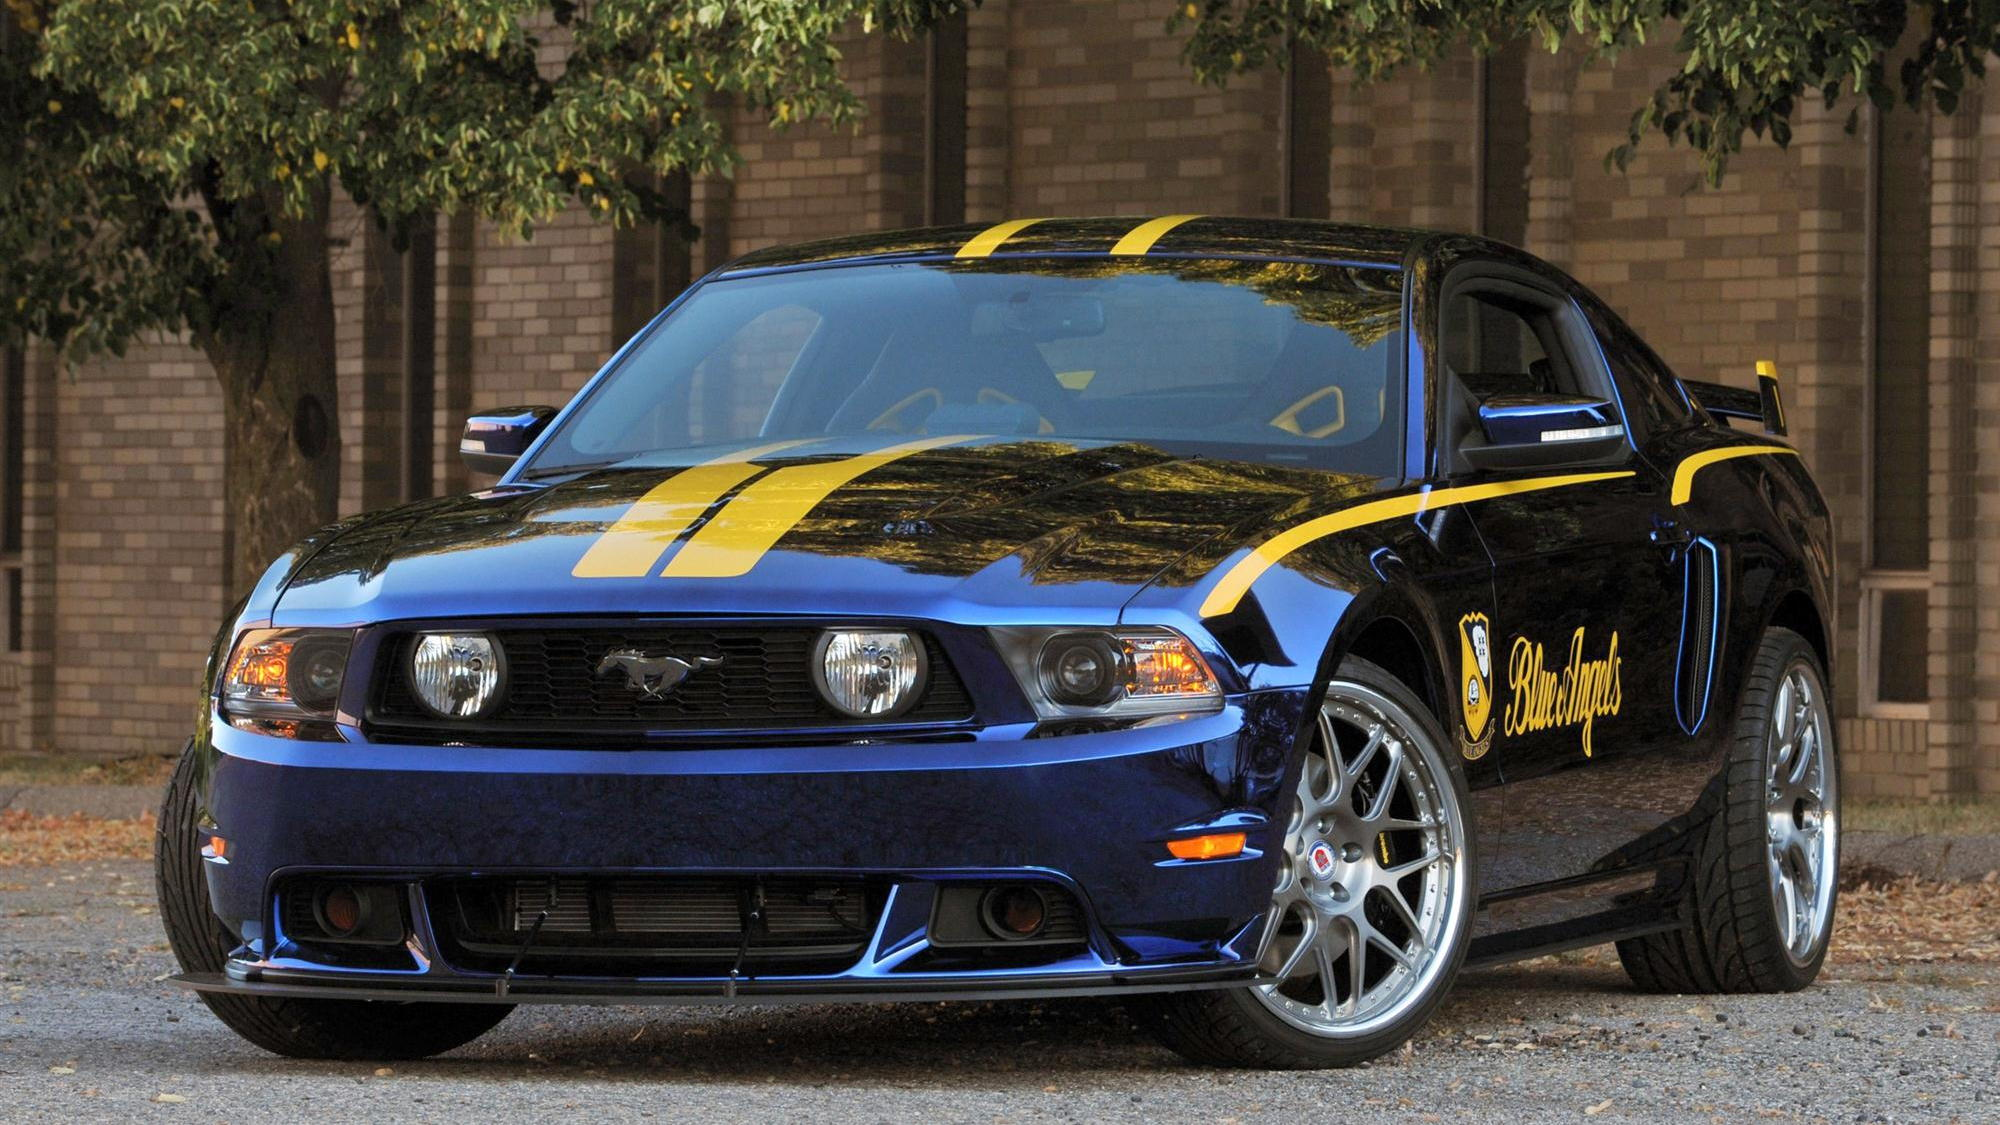 2012 Ford Mustang GT Blue Angels Edition